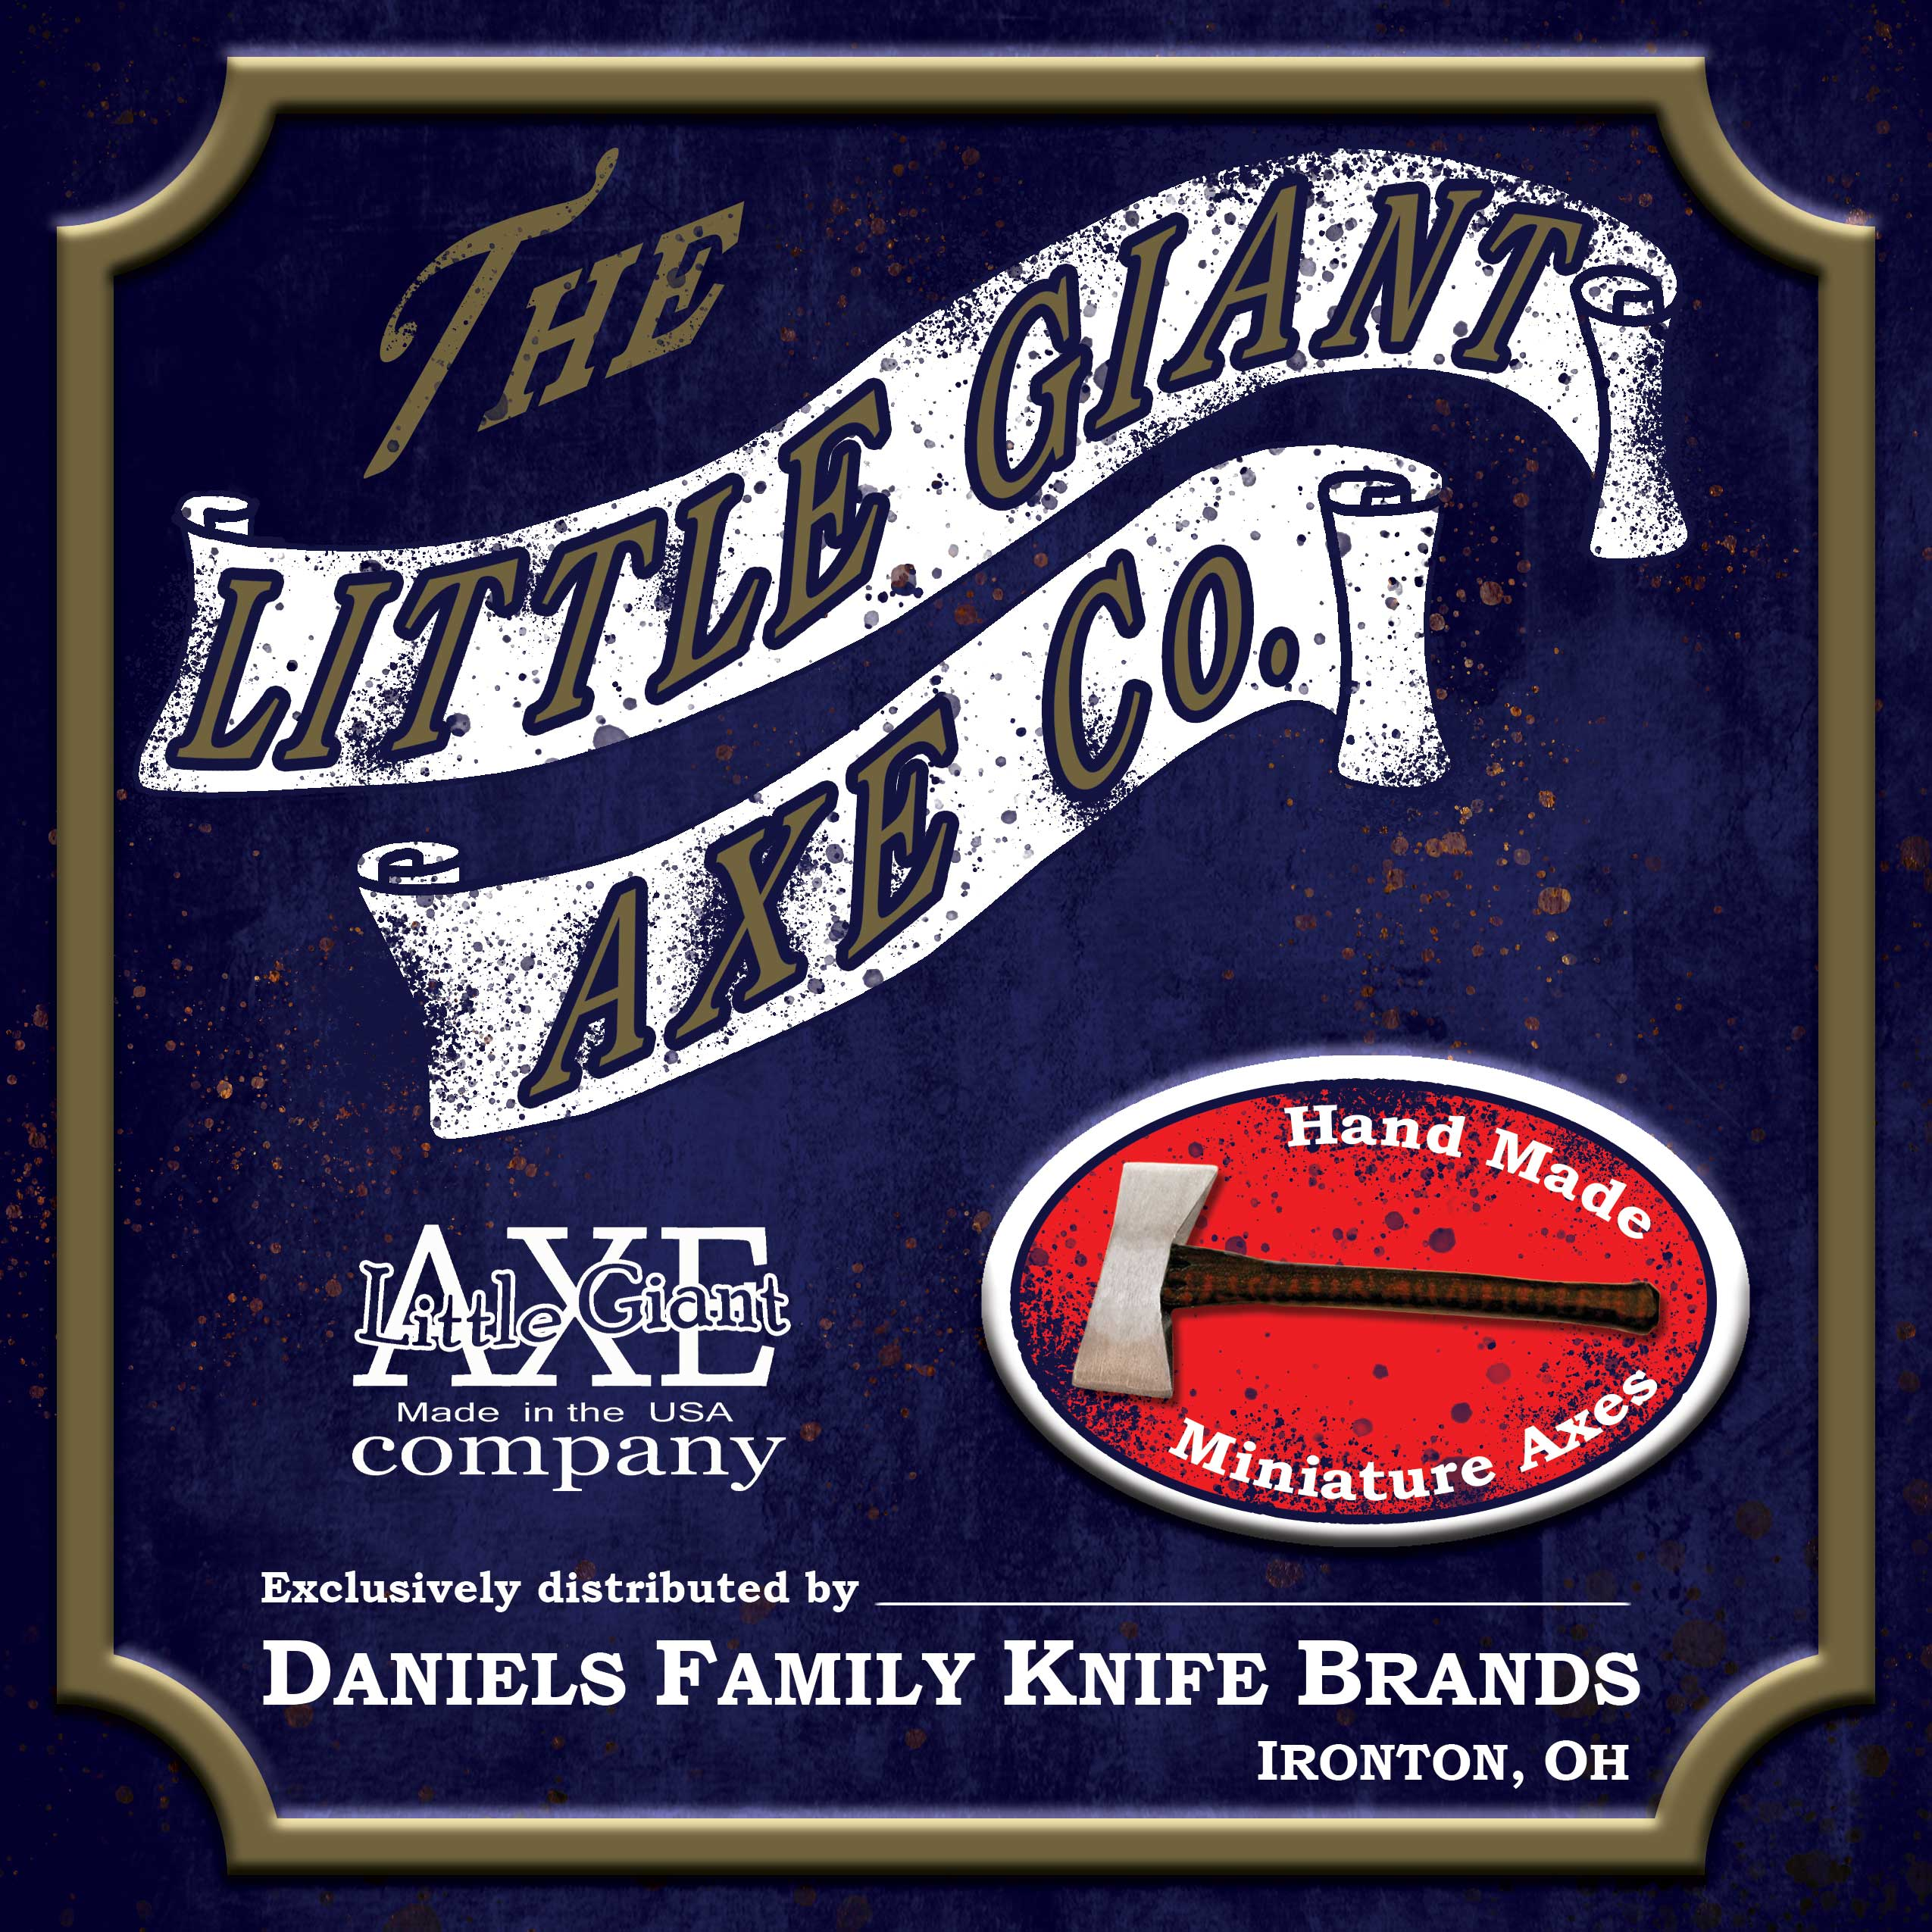 Little Giant Axe Co. logo ad